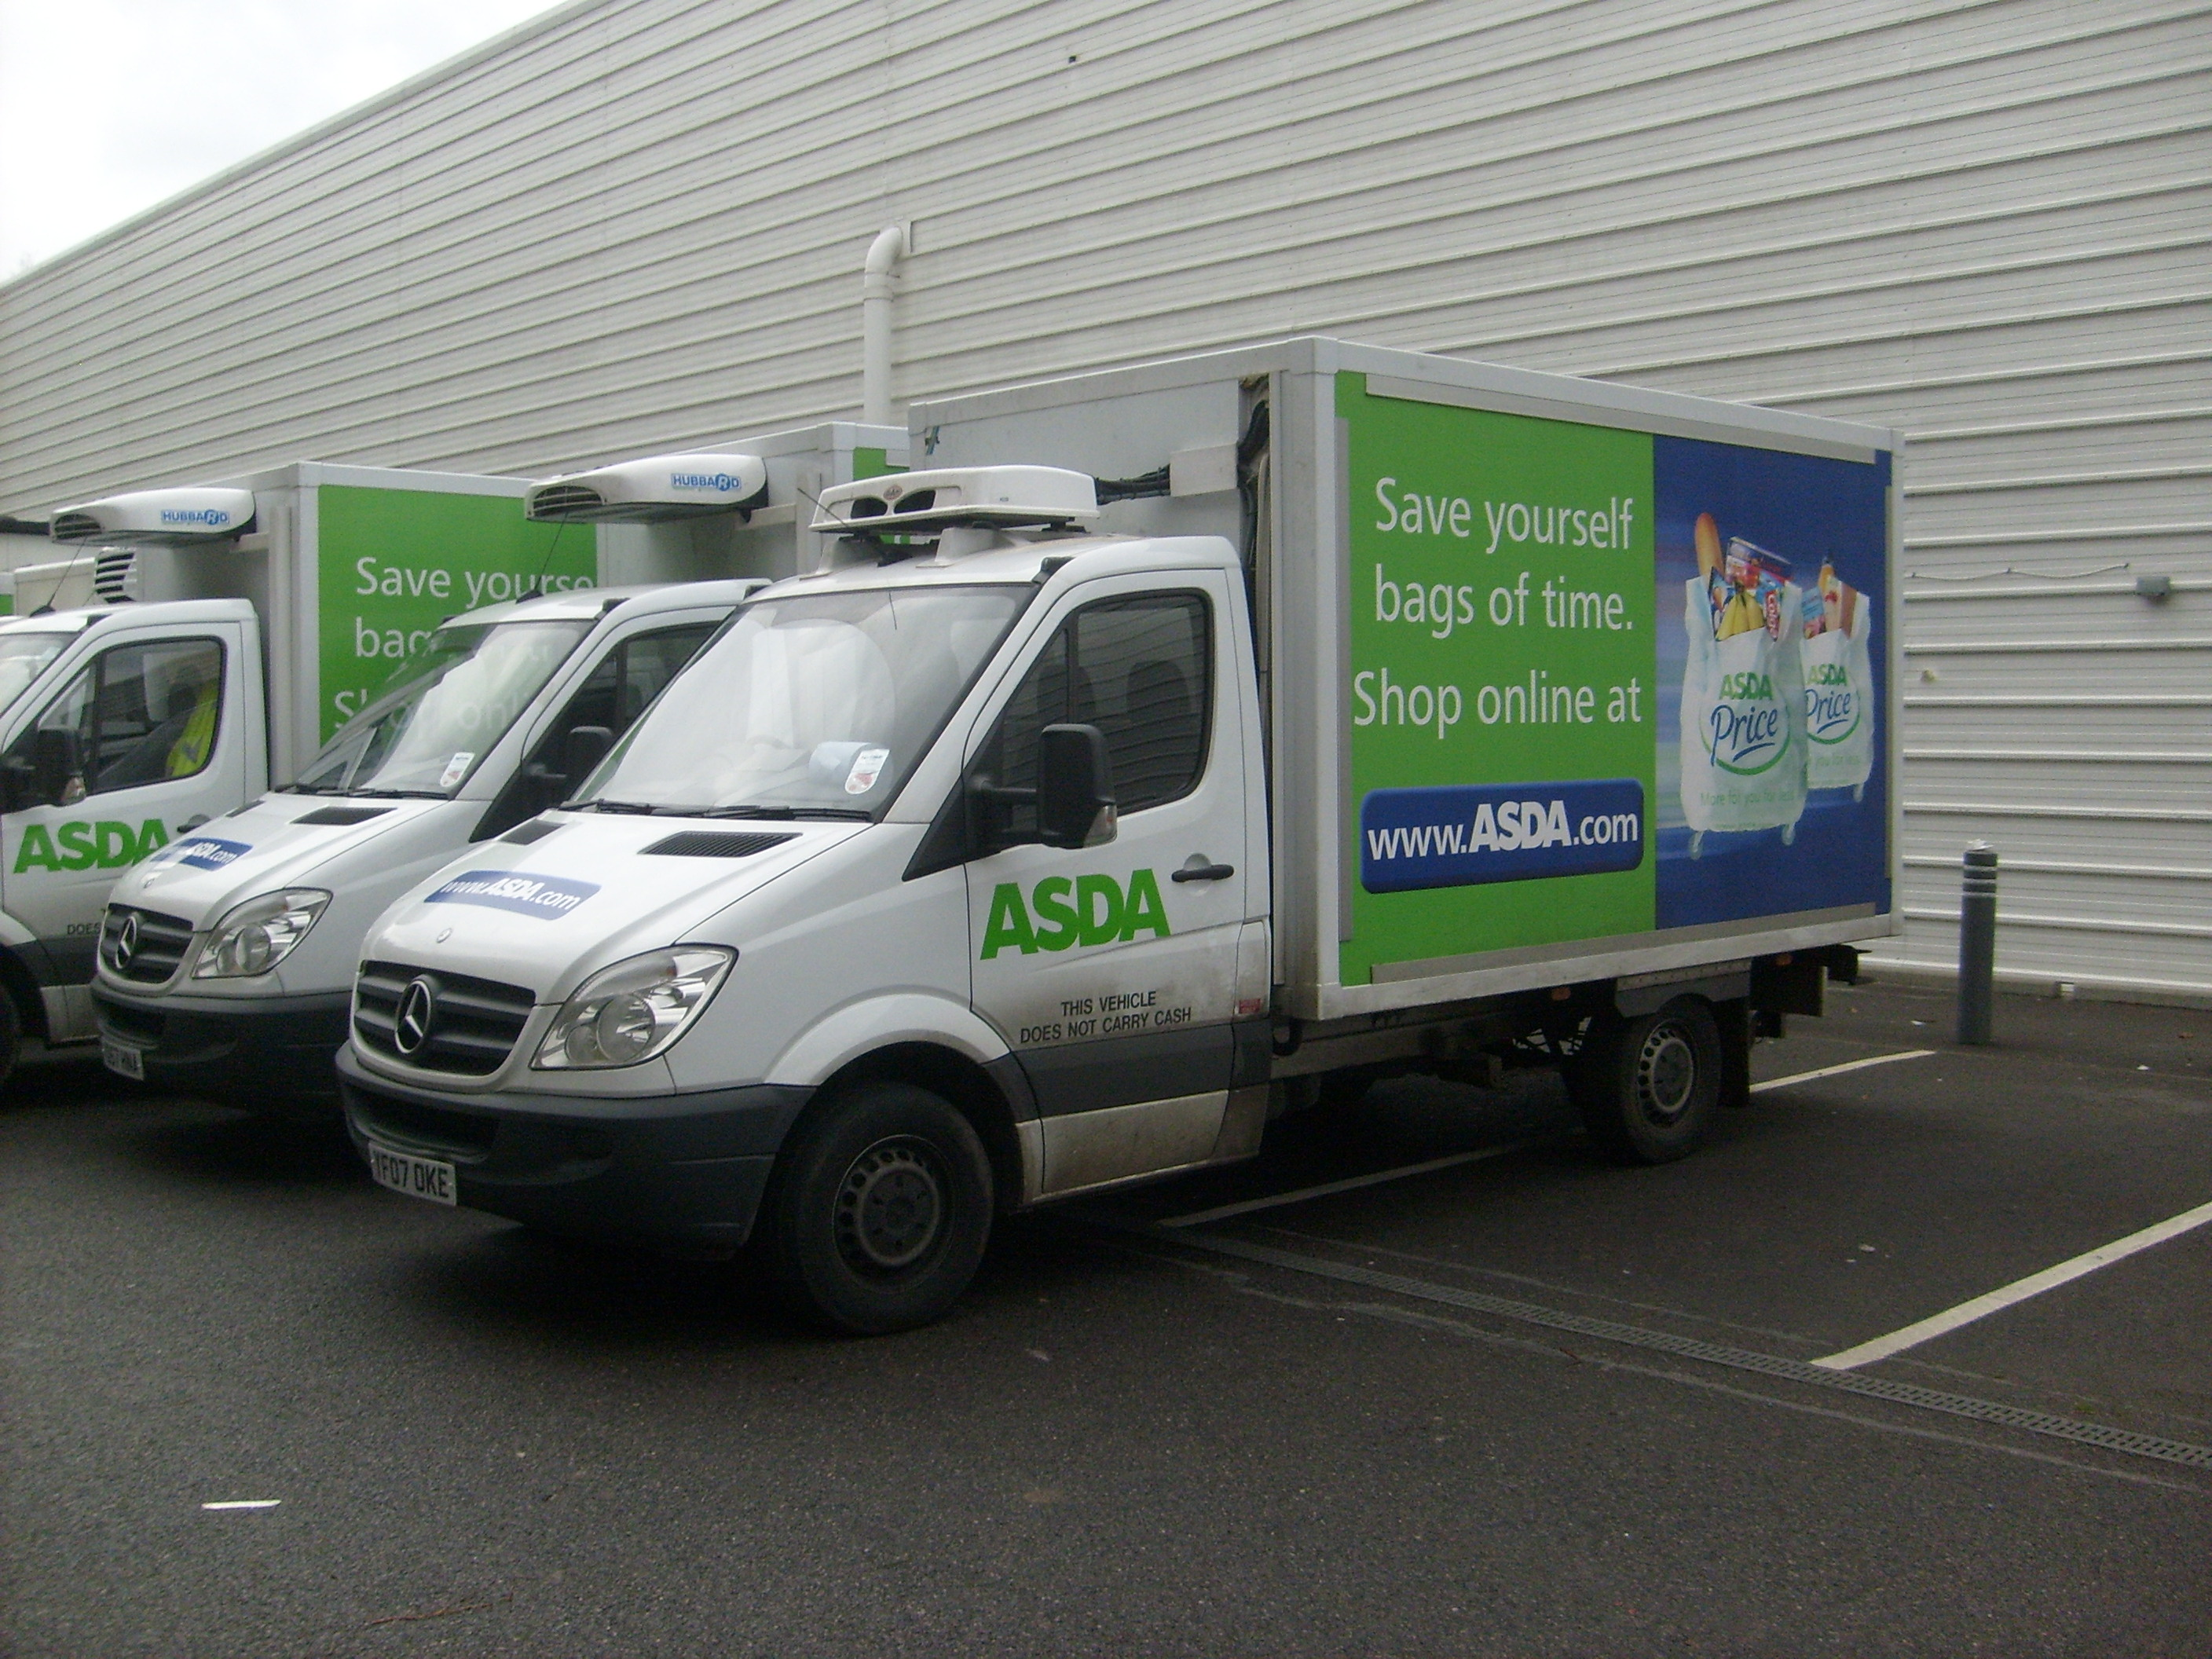 An_ASDA_Mercedes_Benz_Sprinter_delivery_van.jpg